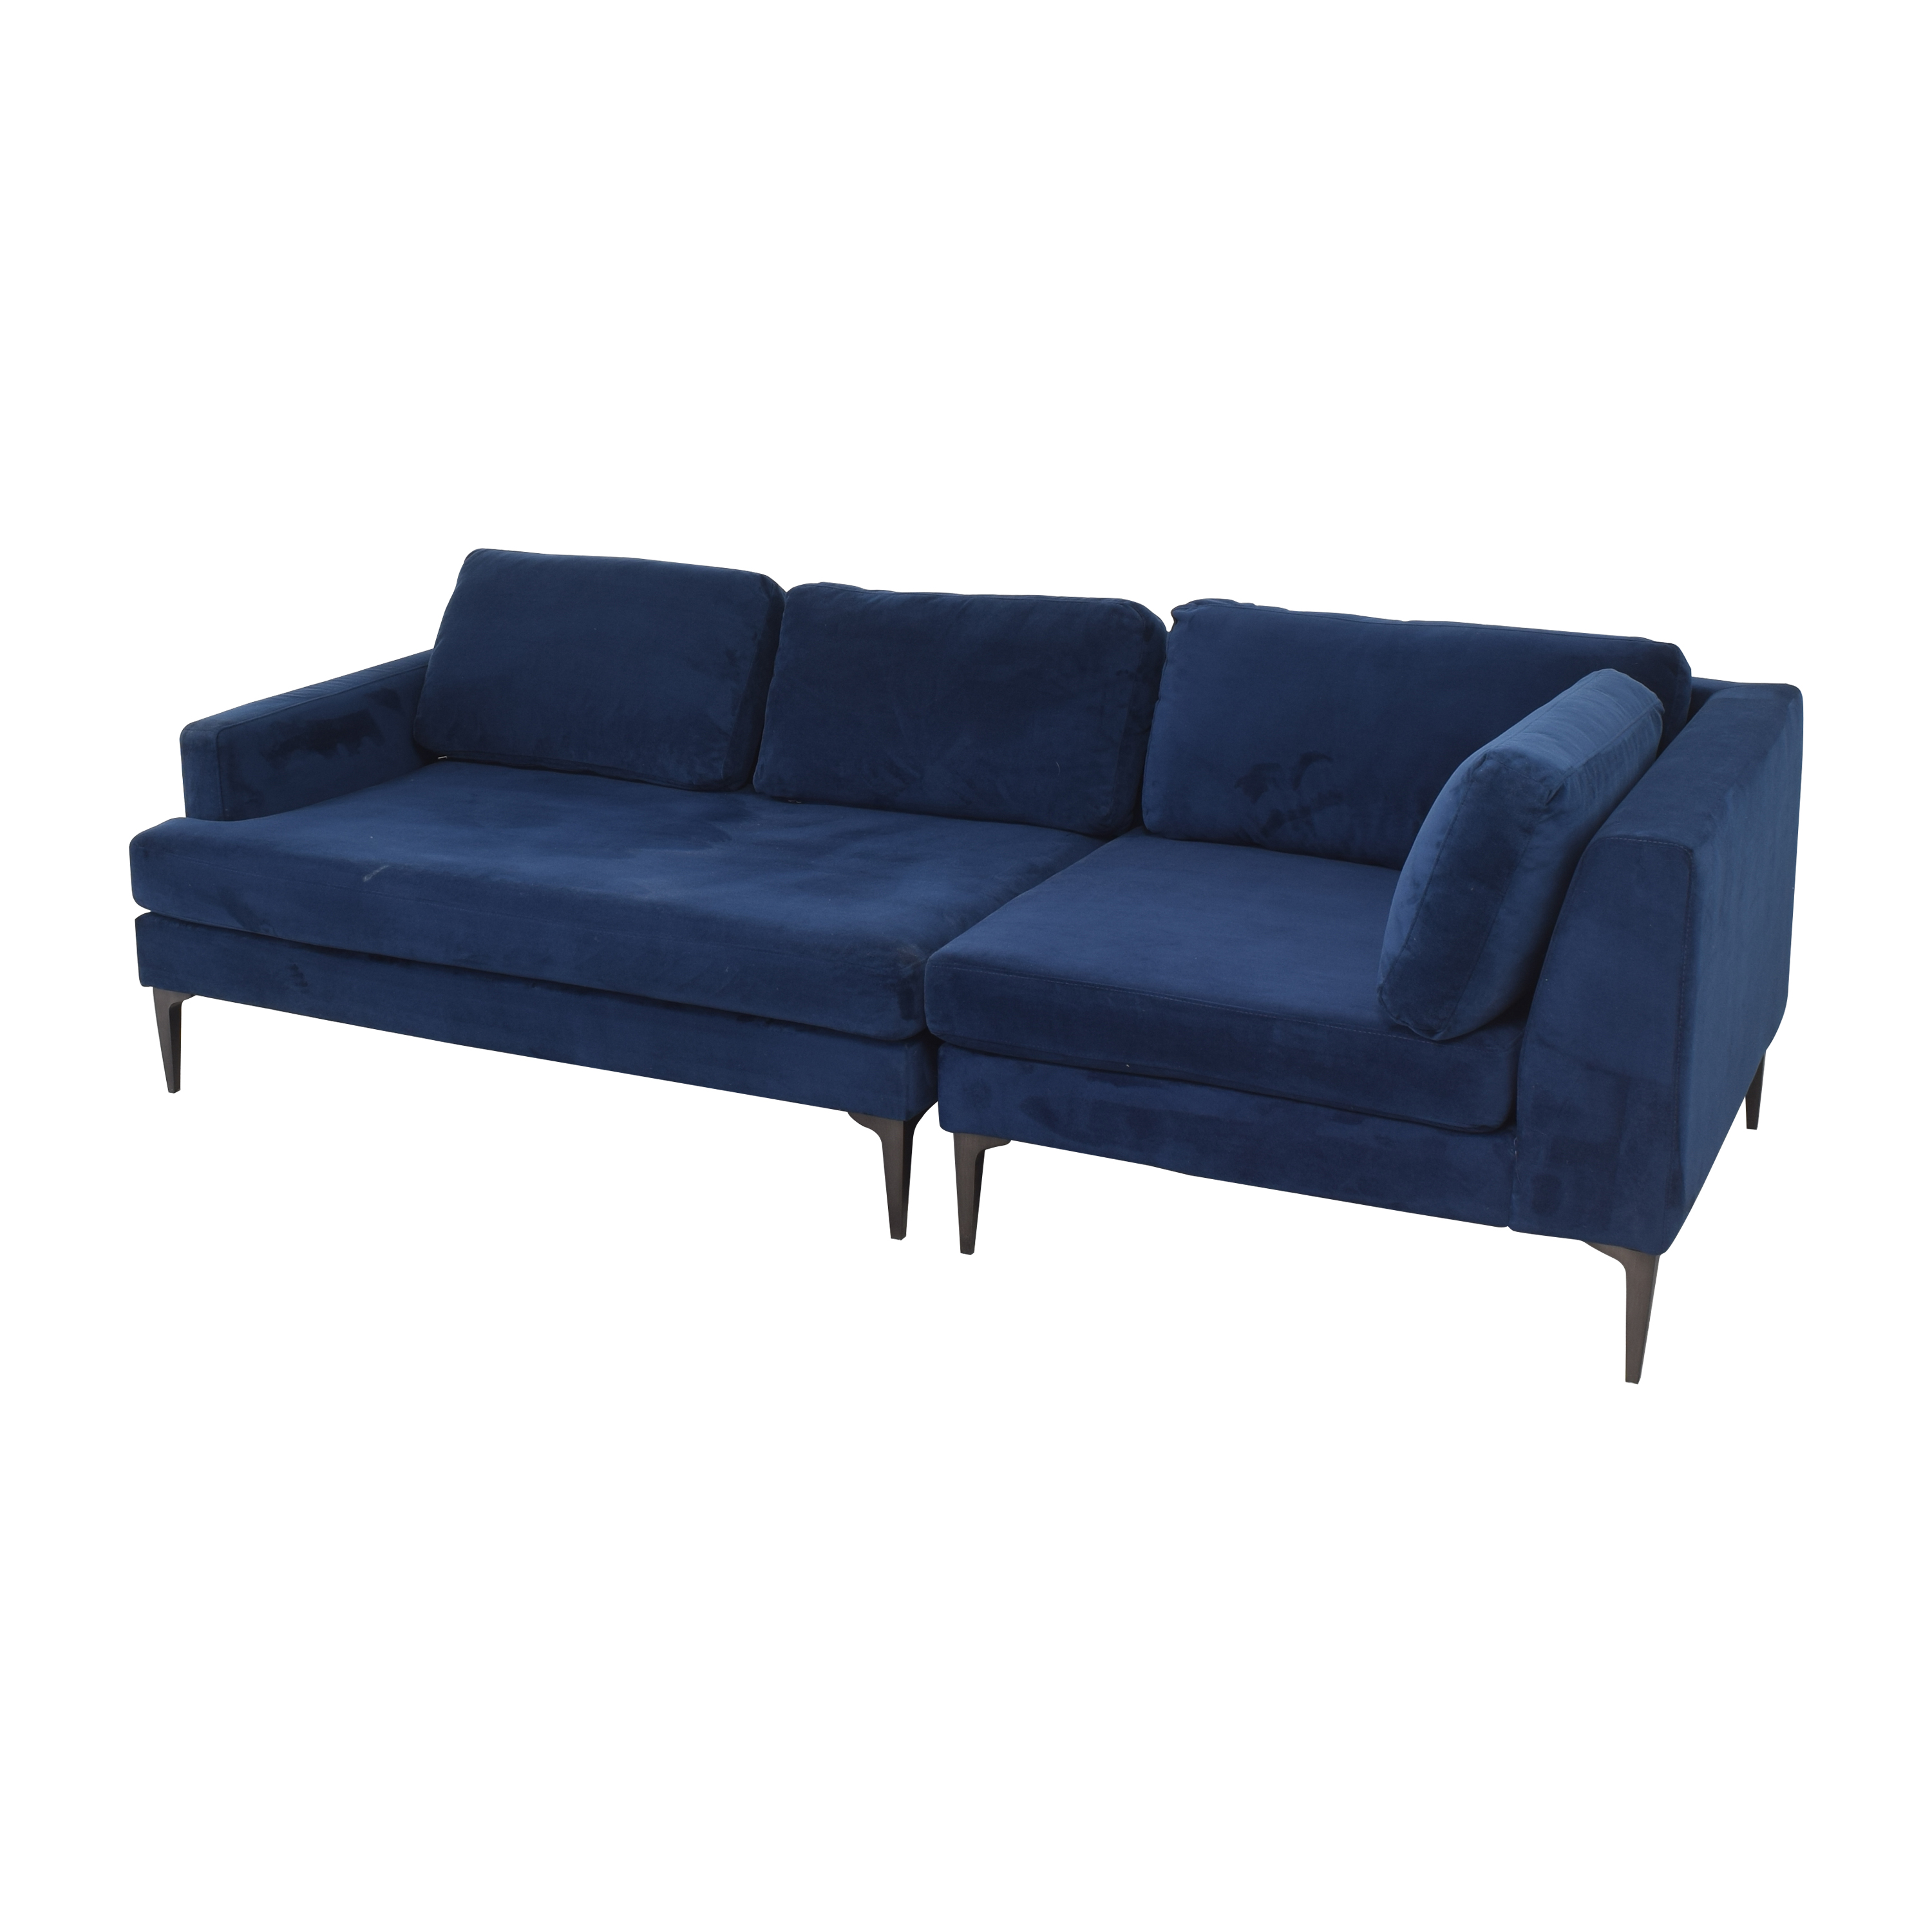 West Elm West Elm Andes 3-Piece Chaise Sectional ct